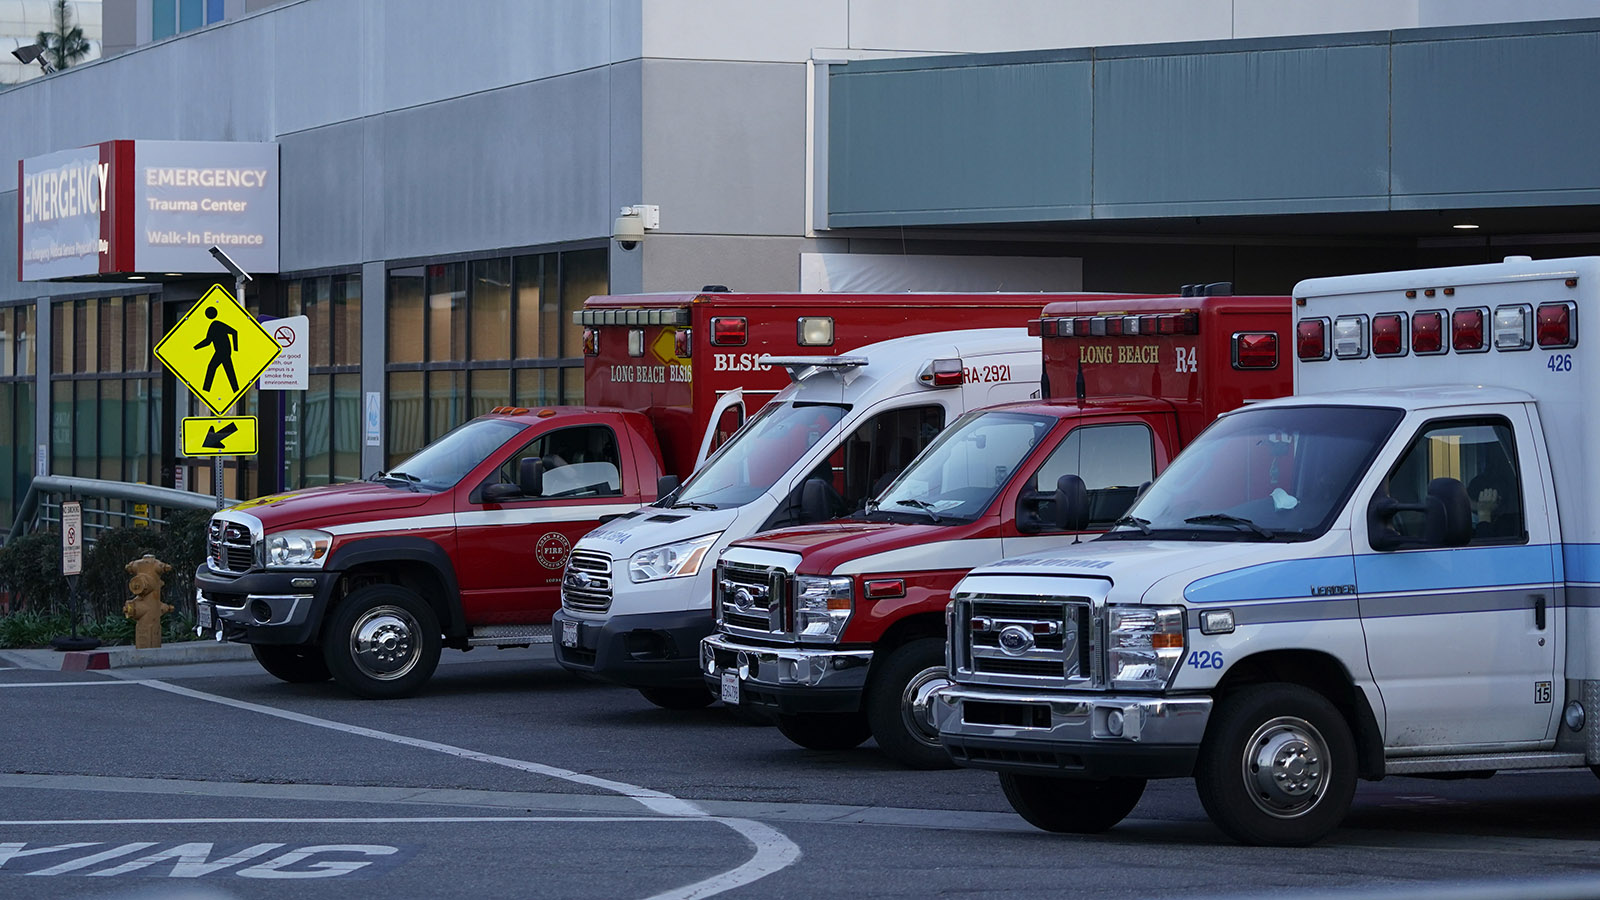 Ambulances are parked outside an emergency room entrance at Long Beach Medical Center Tuesday, January 5, in Long Beach, California.